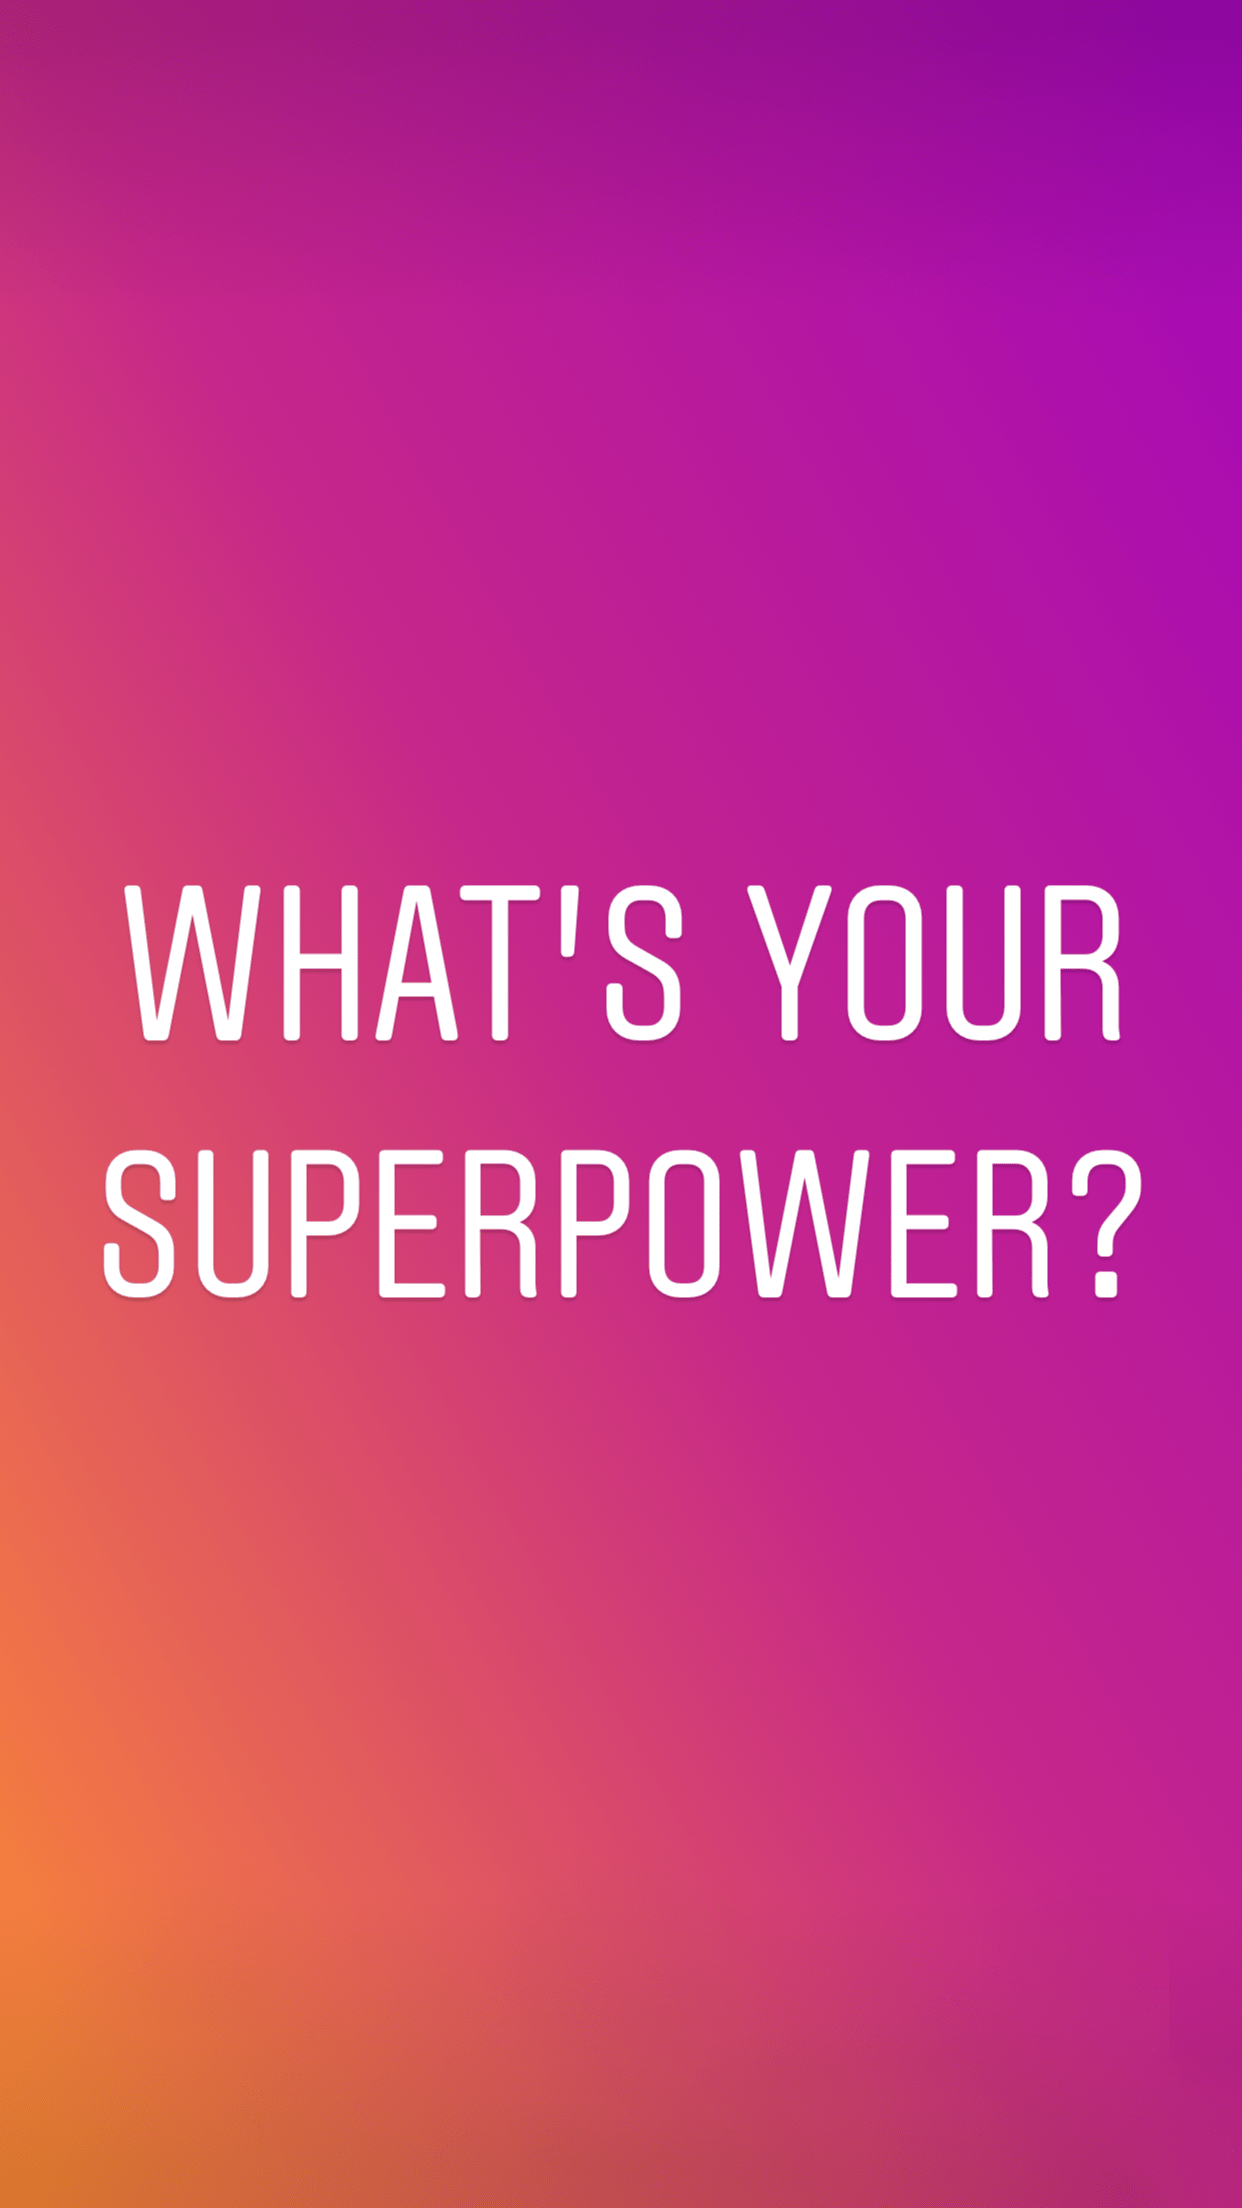 instagram stories template image to engage with your followers - what's your superpower?